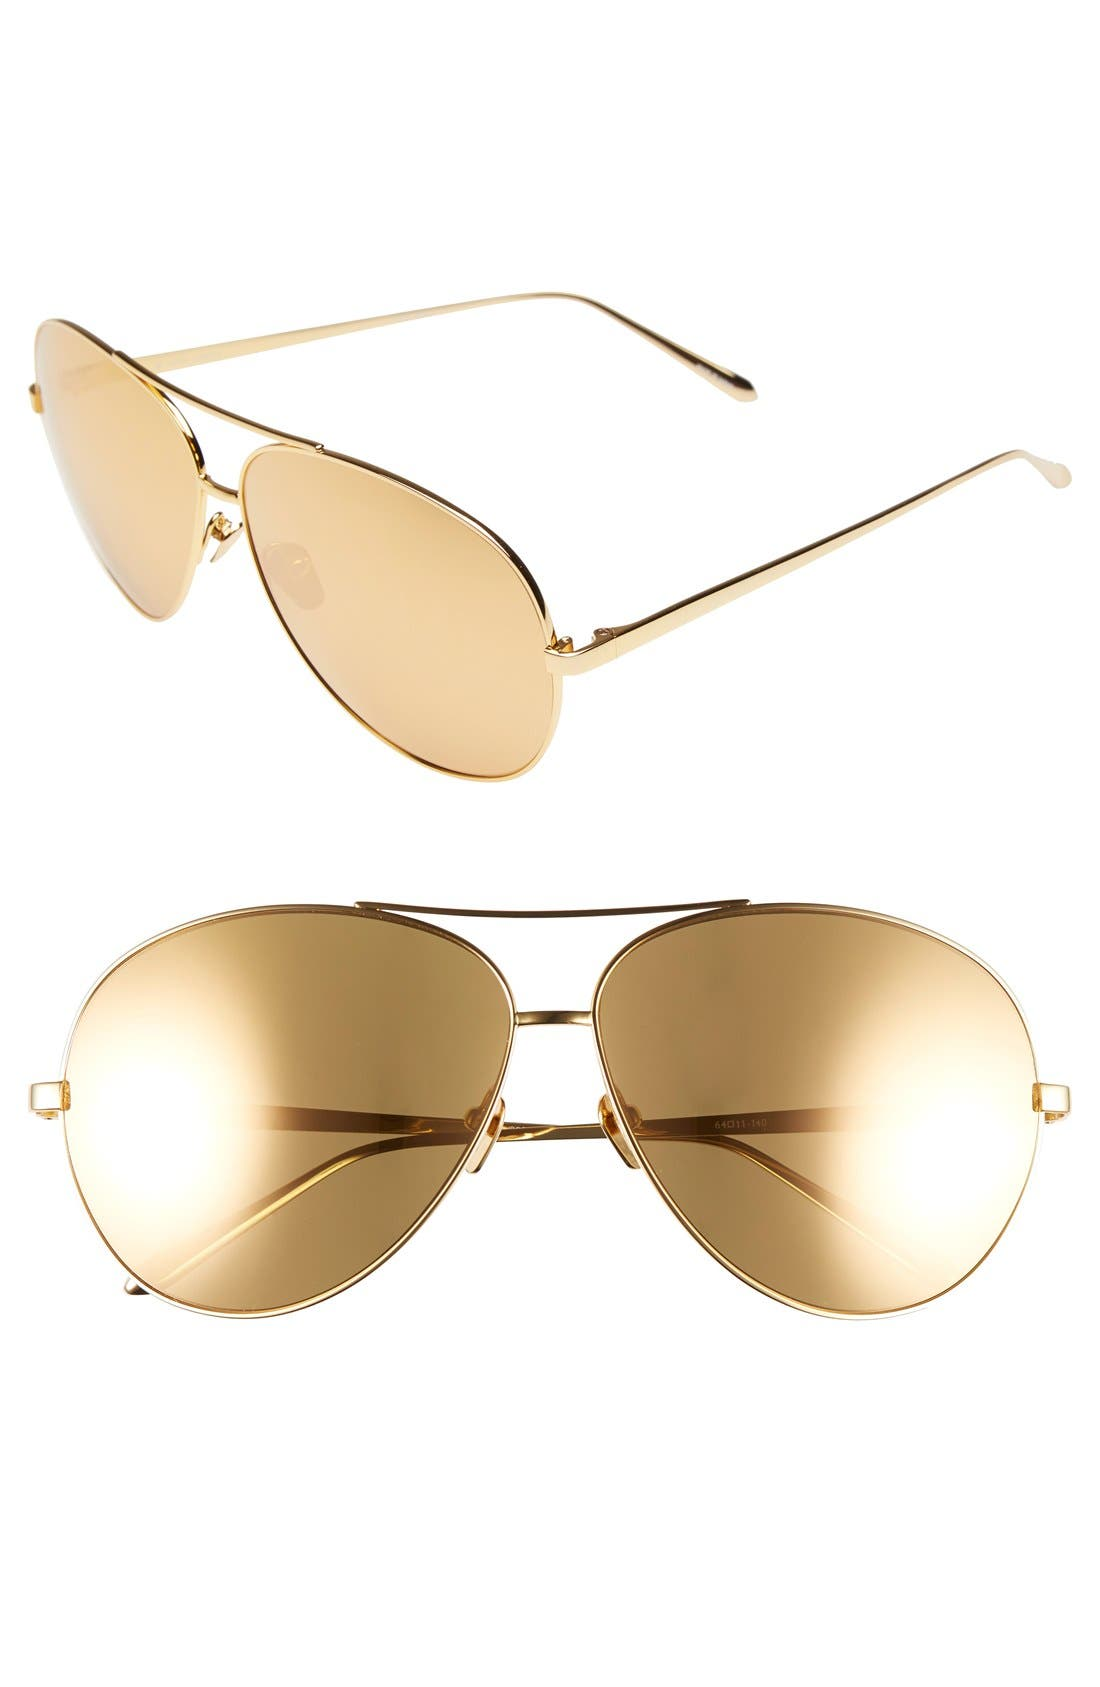 Main Image - Linda Farrow 64mm 22 Karat Gold Plated Aviator Sunglasses